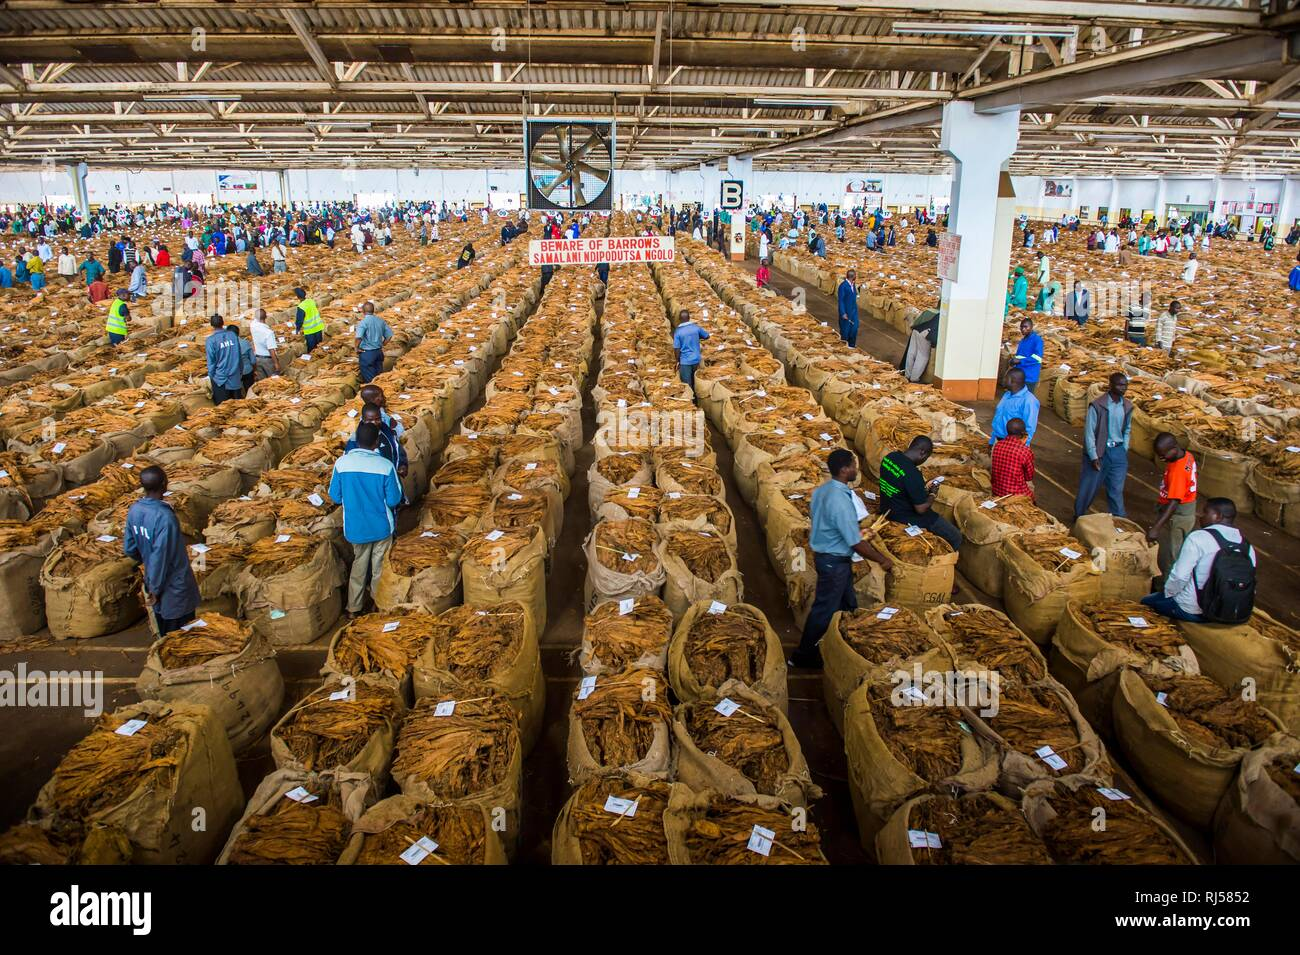 Local workers between huge bags with dried tobacco leaves in a hall on a Tobacco auction, Lilongwe, MalawiTobacco auction - Stock Image